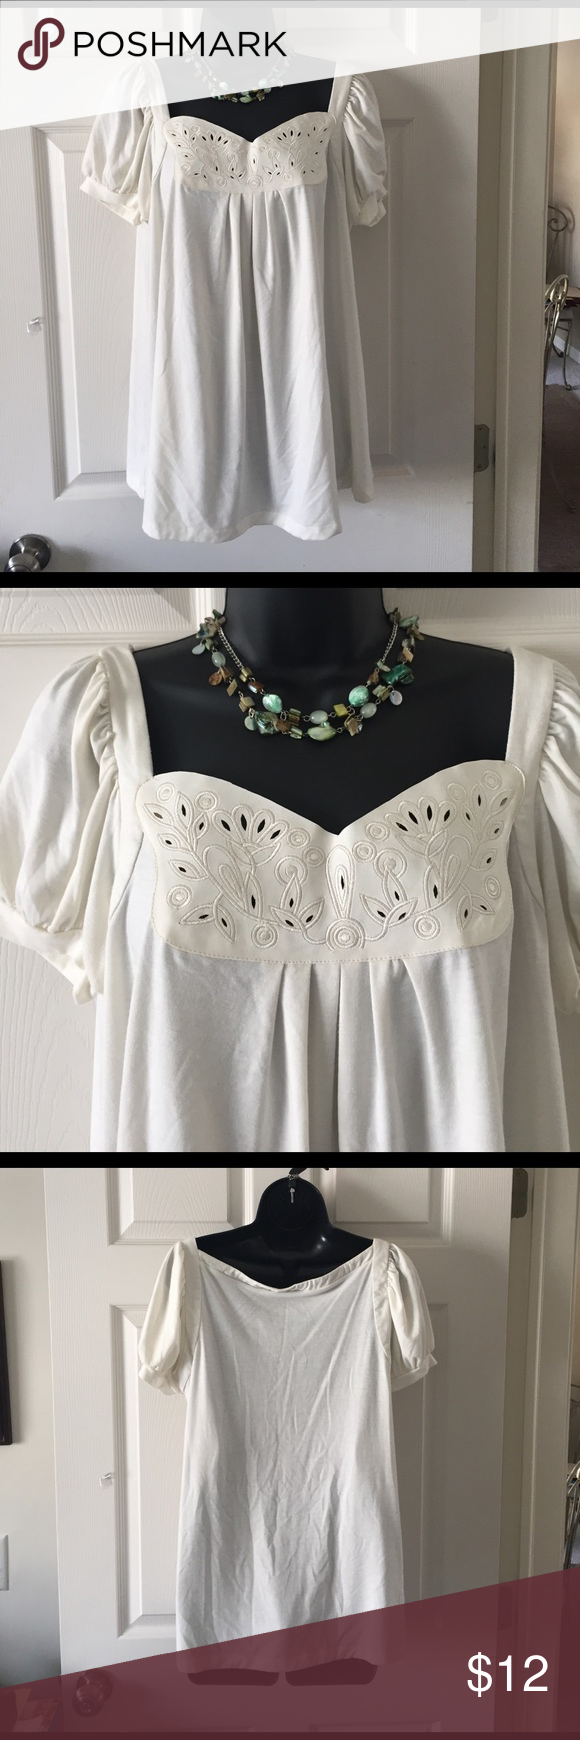 I. N. Studio*!top Ivory with front cut out pleather design. I. N. studio Tops